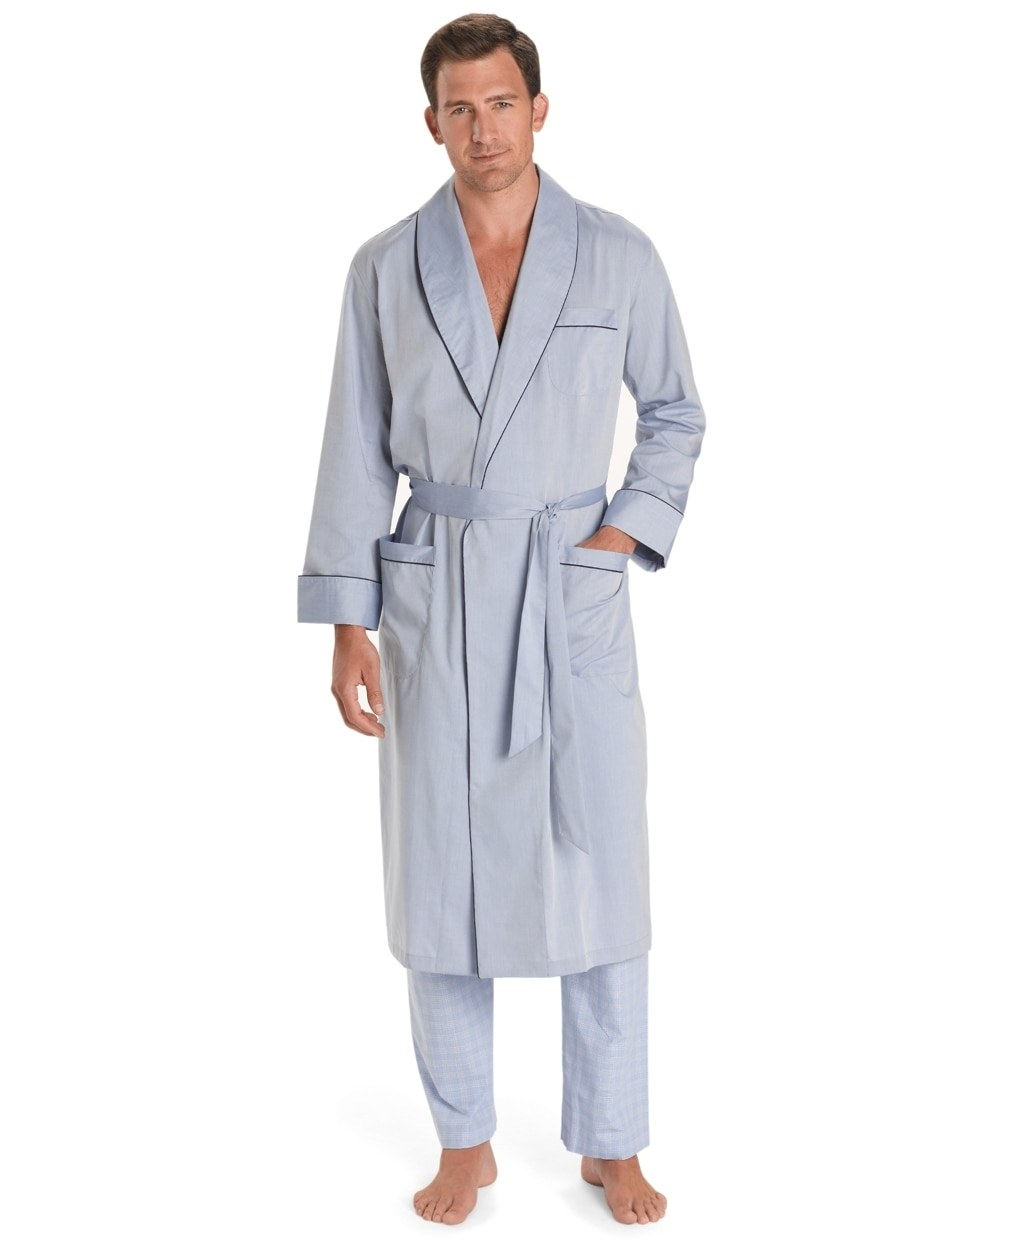 Model wearing light blue chambray robe with removable belt and cuffed sleeves